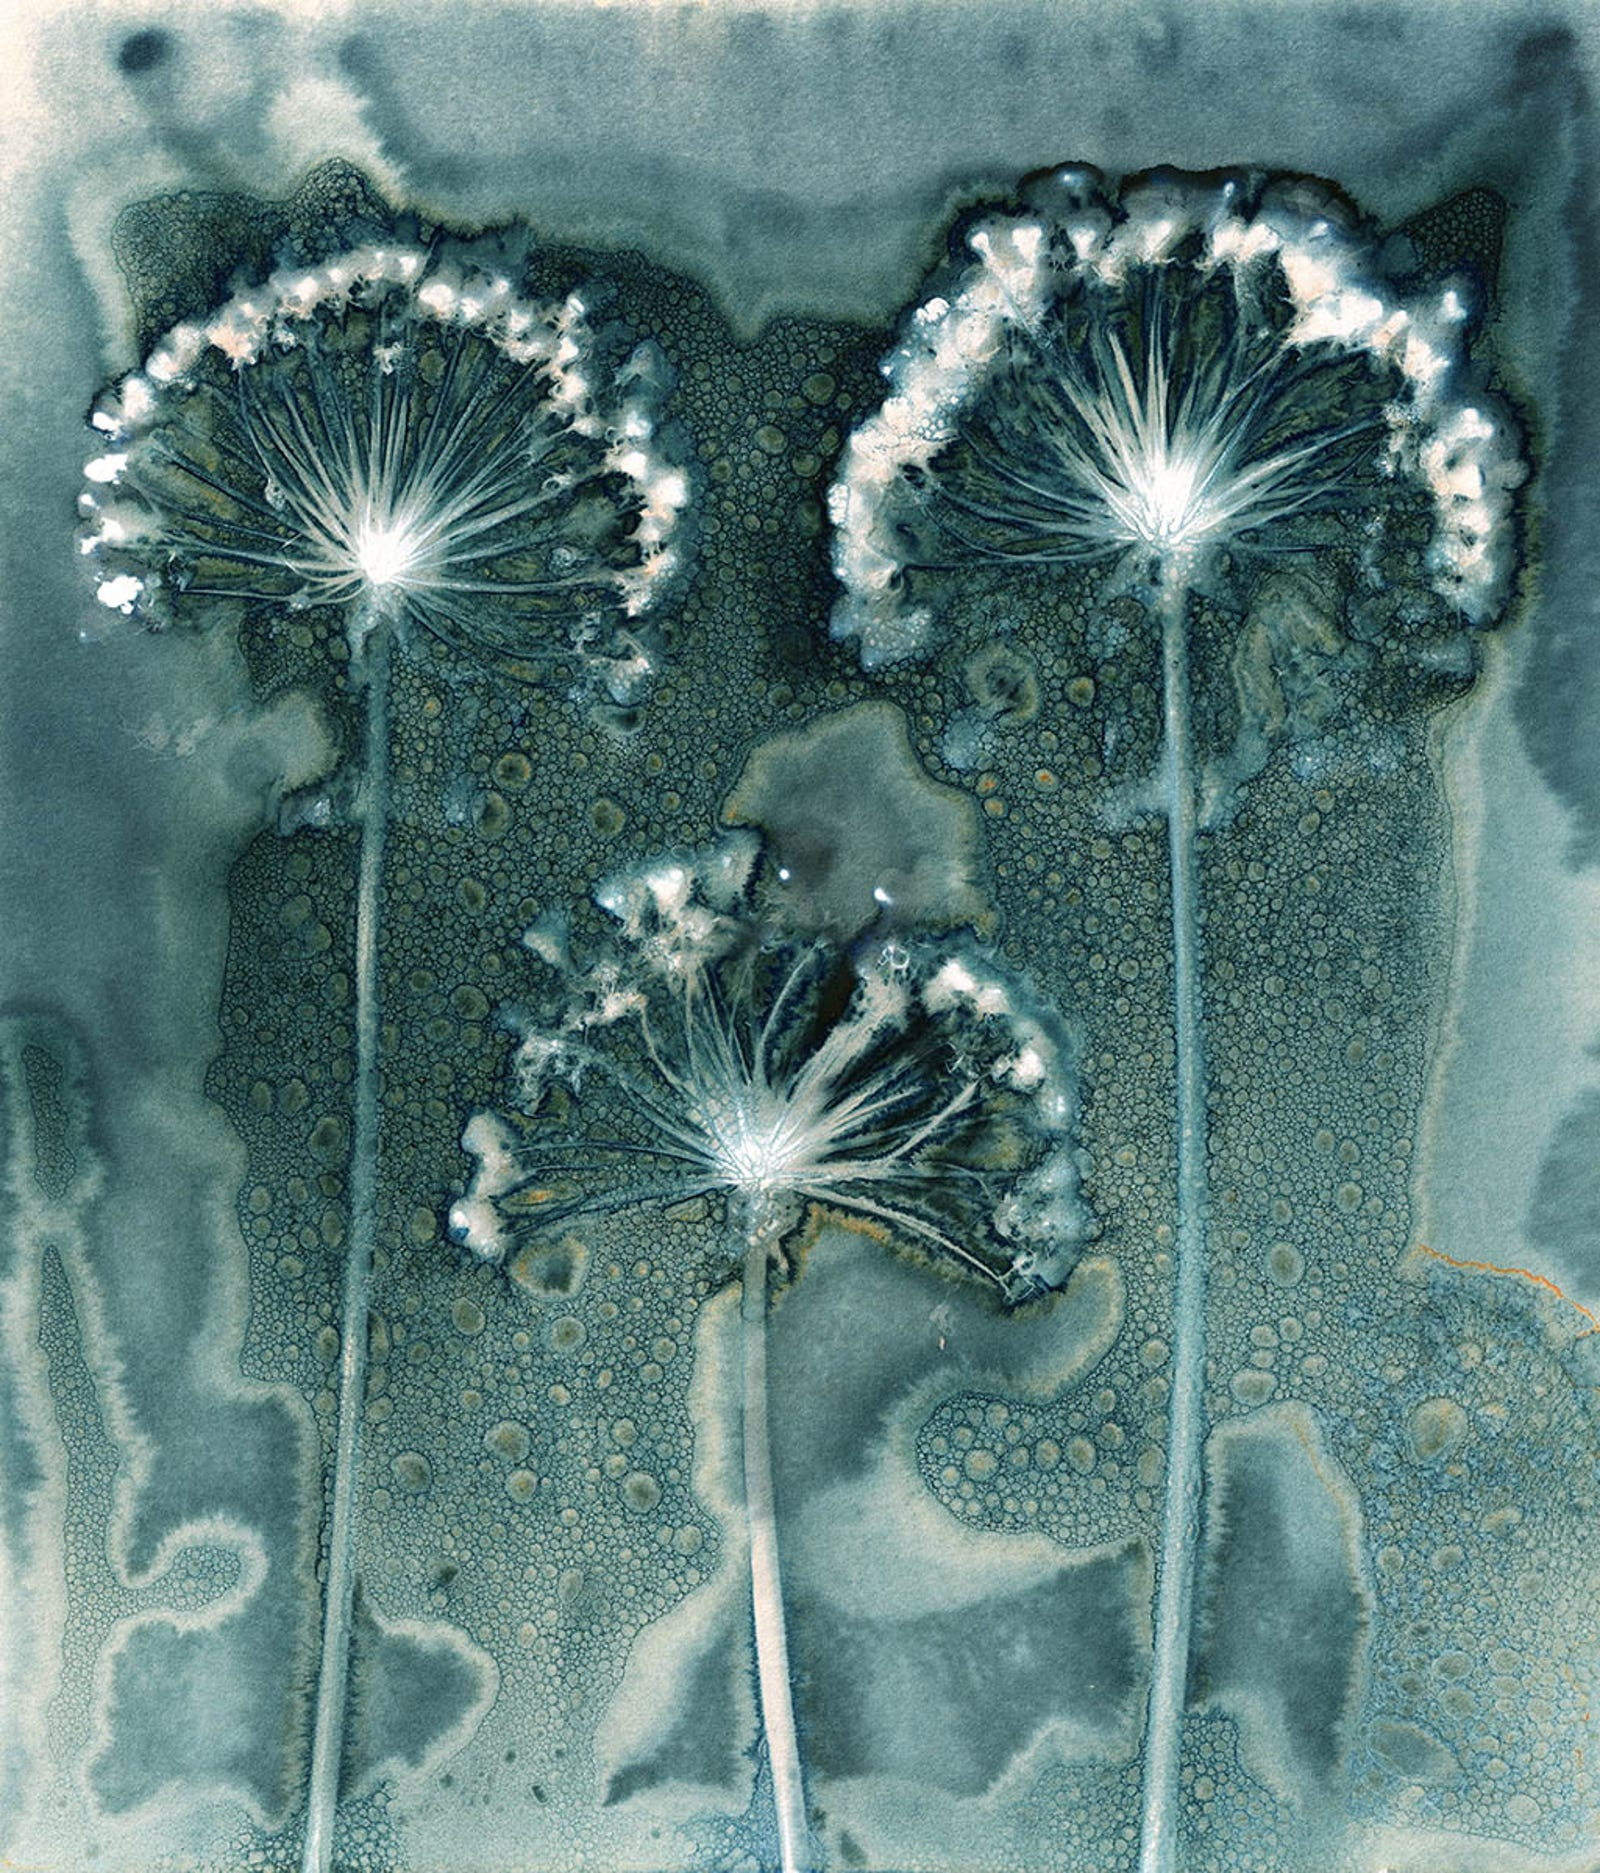 These Award-Winning Botanical Photos Belong in Alice in Wonderland